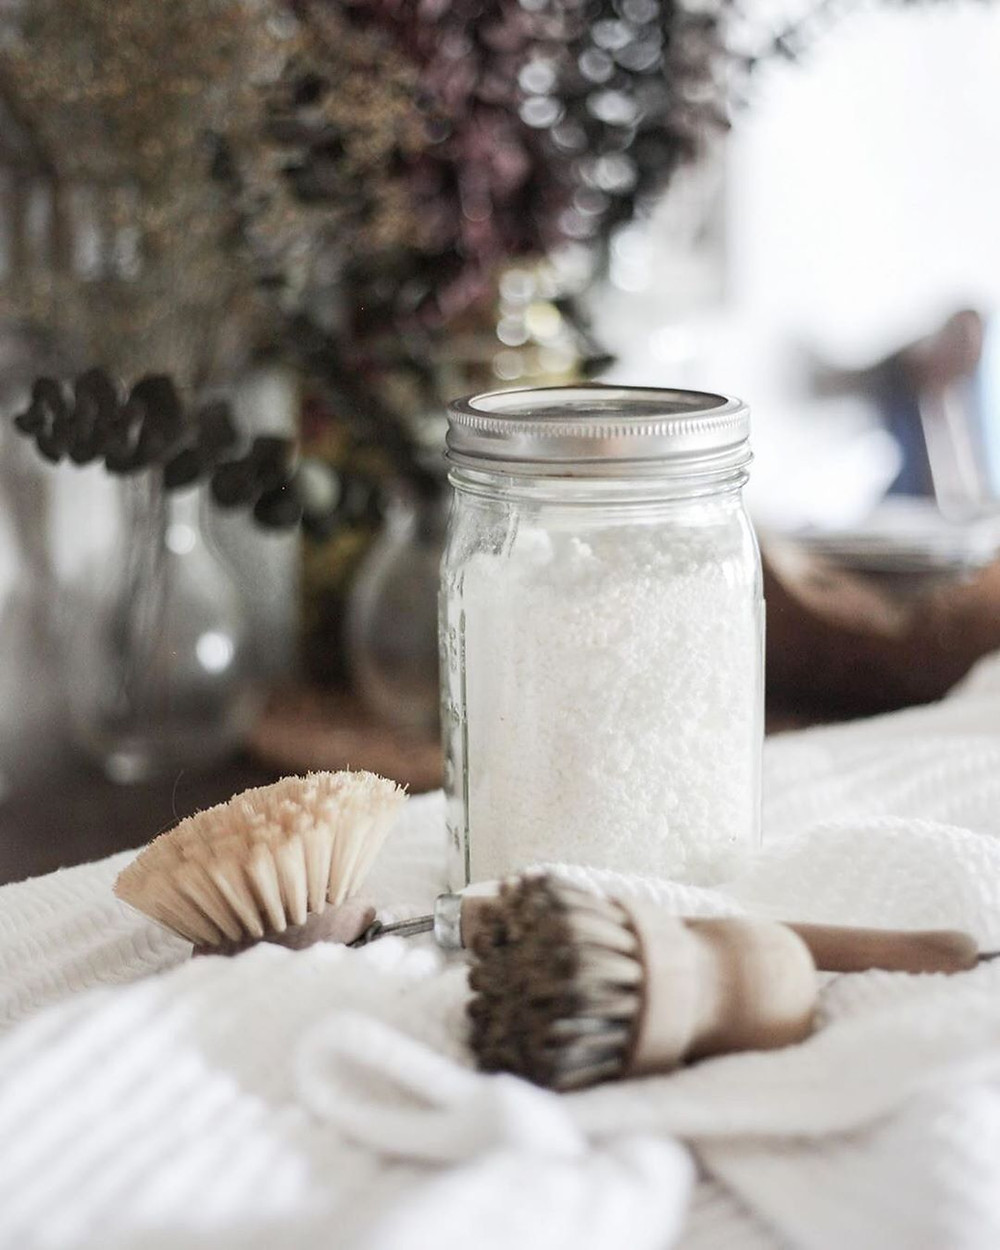 DIY Plastic-free Dishwasher Powder and Tablets in a glass jar against white background